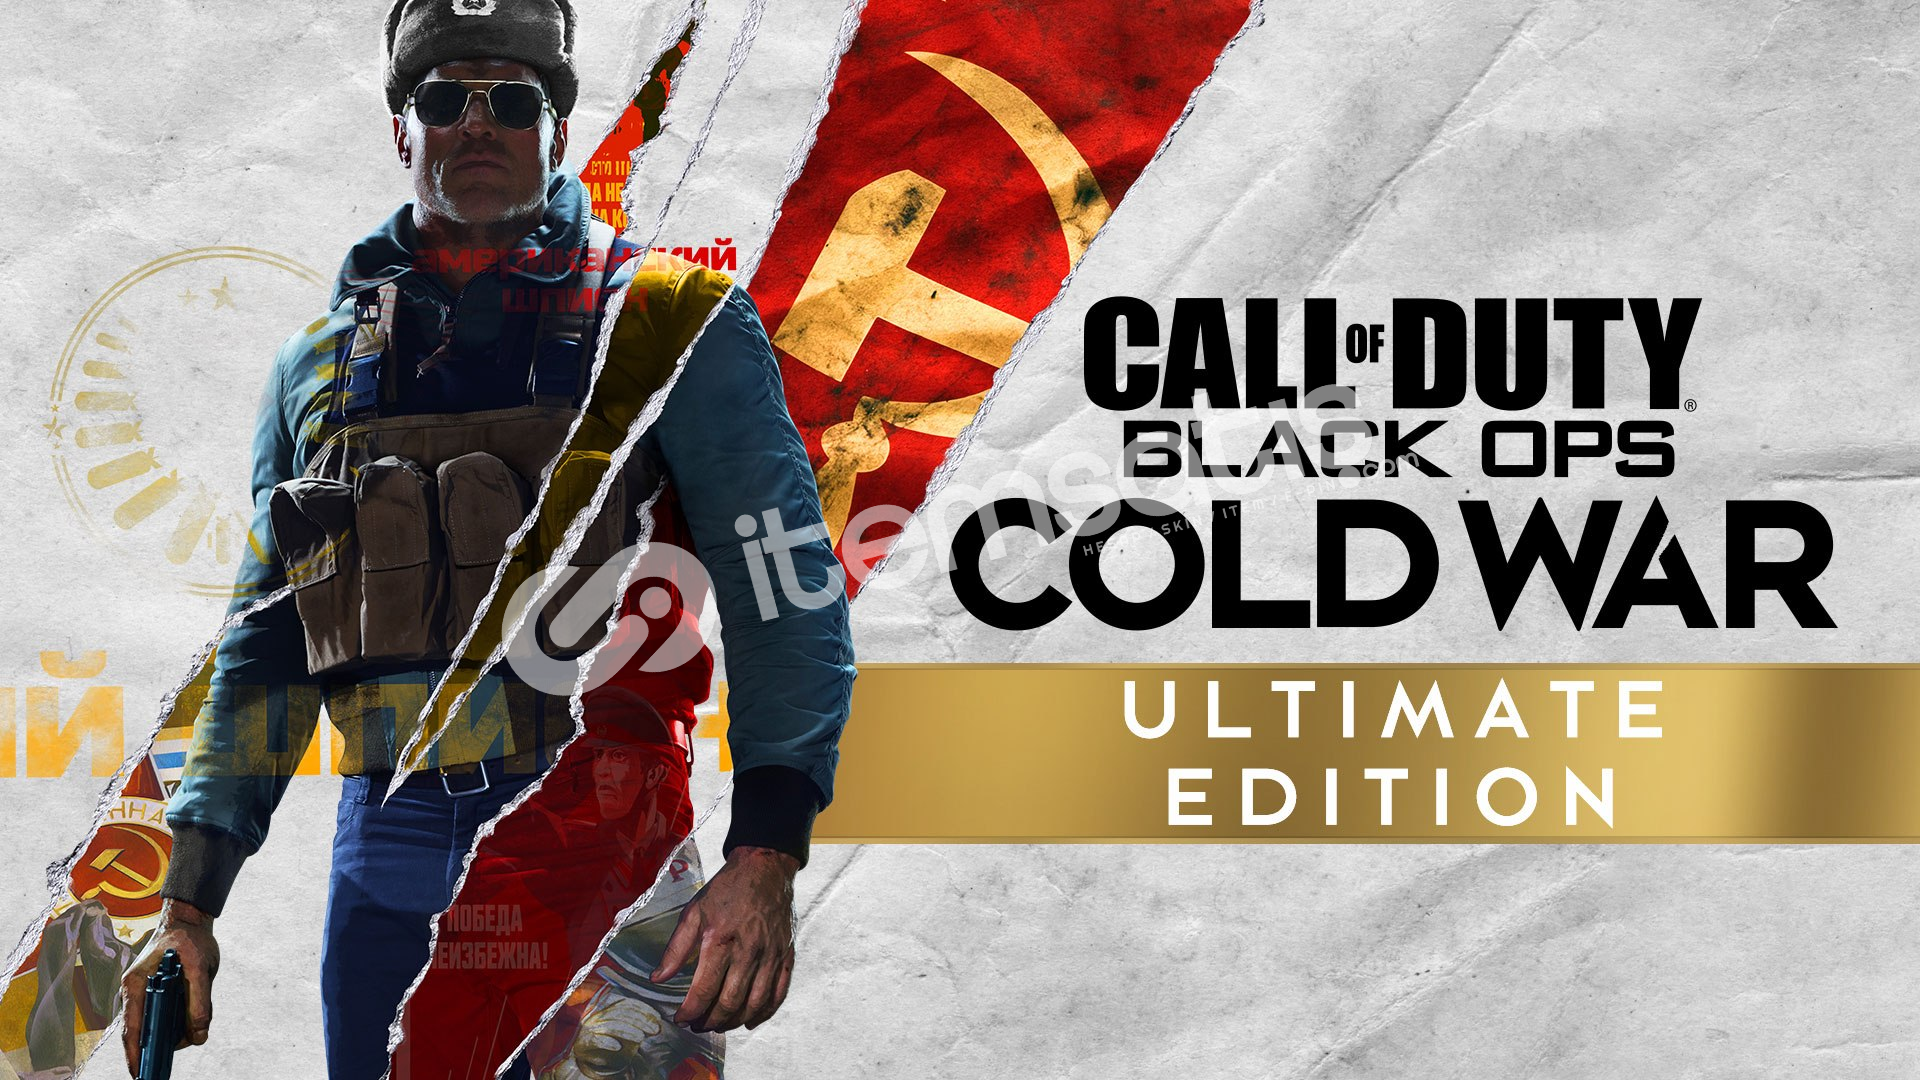 (ONLİNE) Call of Duty Black Ops Cold War Ultimate Edition